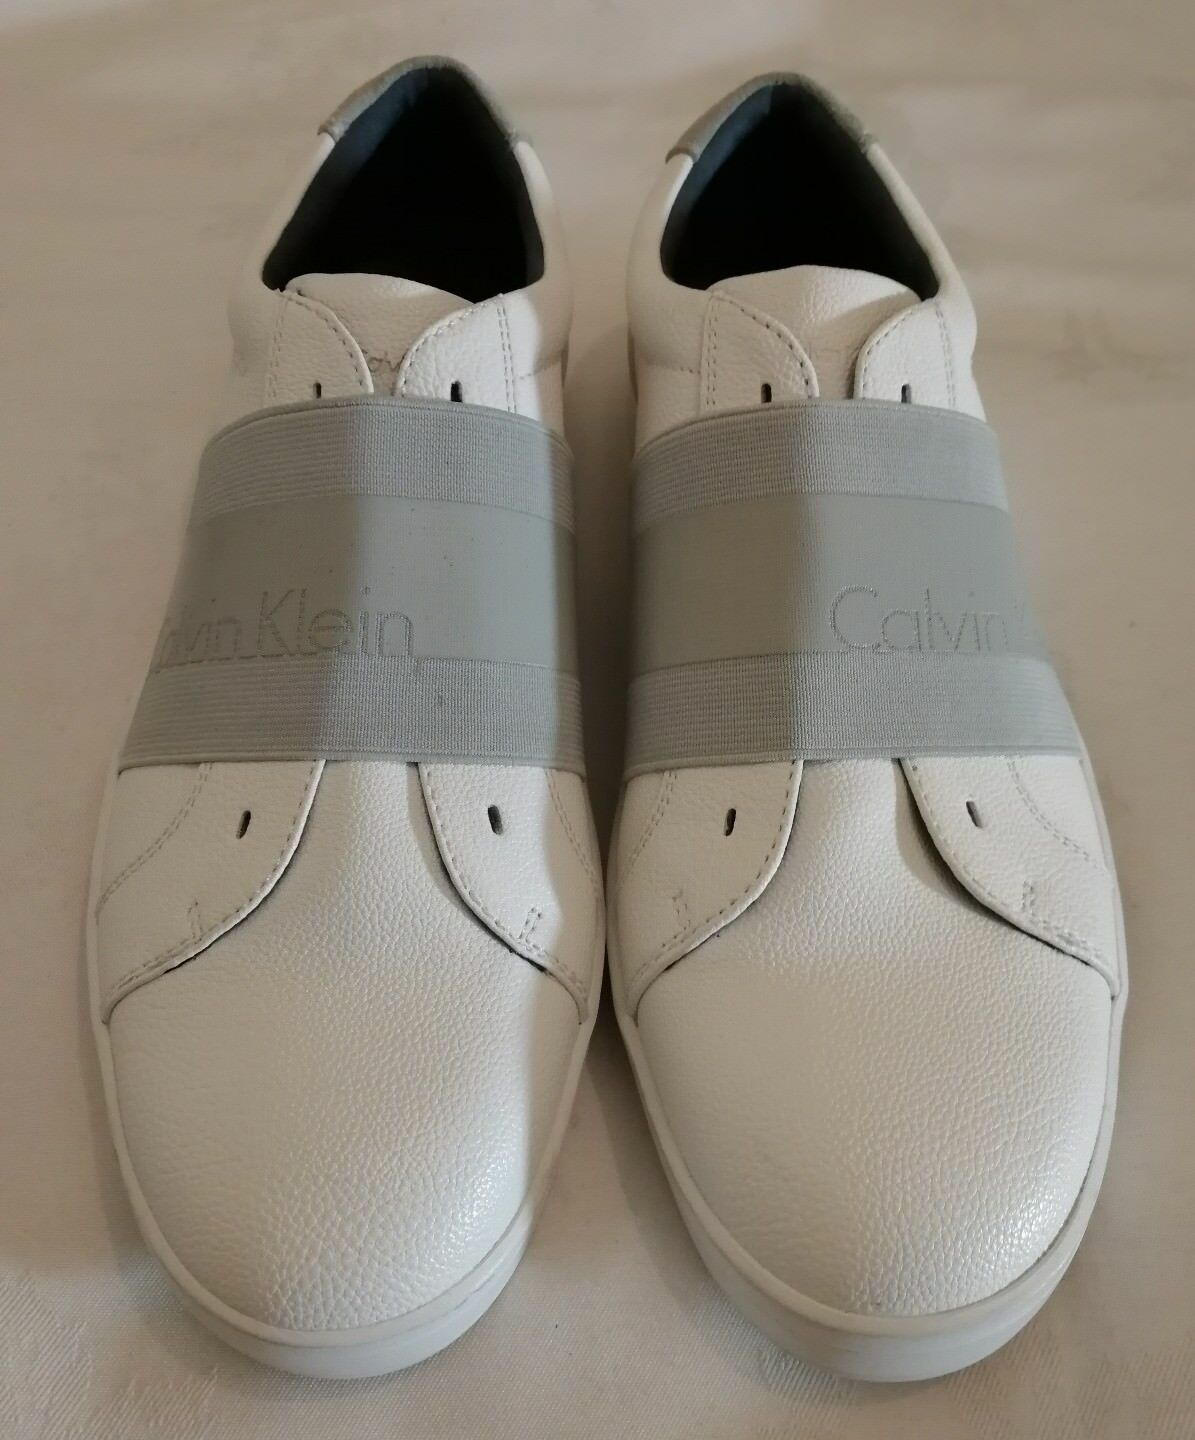 Calvin Klein Baltic Men's Slip on Sneakers Trainers eu WEISS Größe uk 9 eu Trainers 43 9fe269